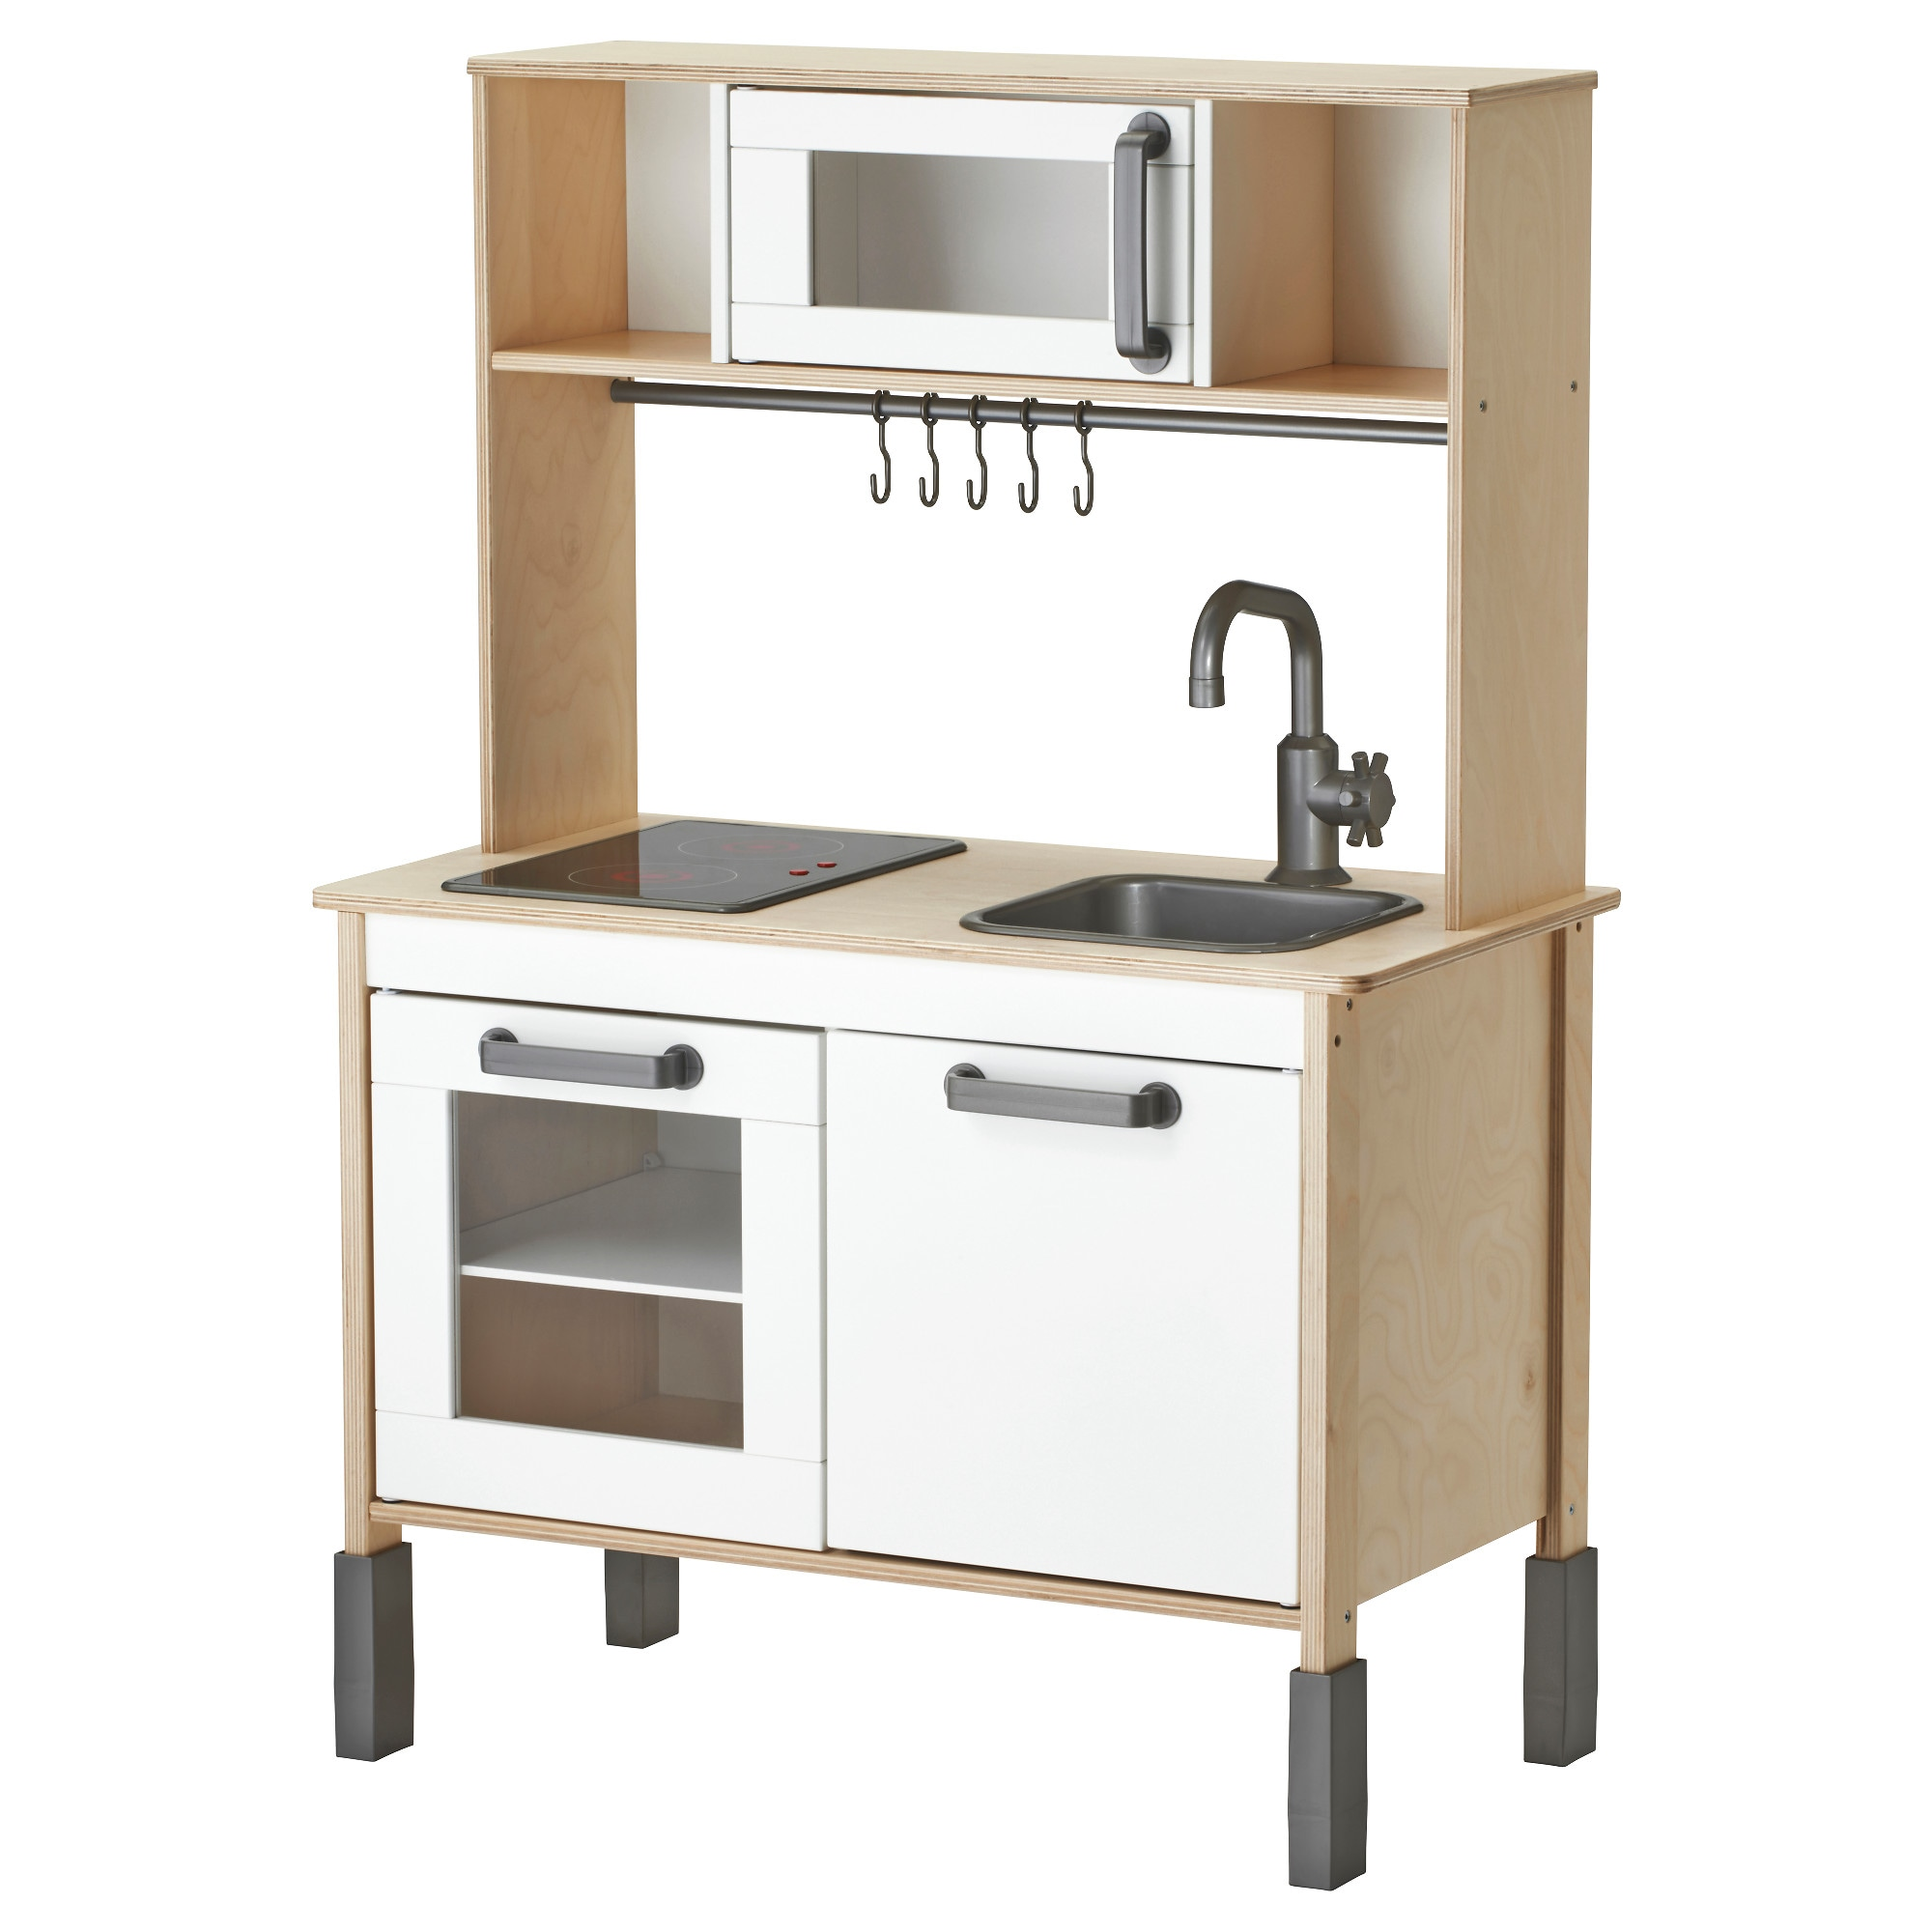 Ikea Kitchen Toy